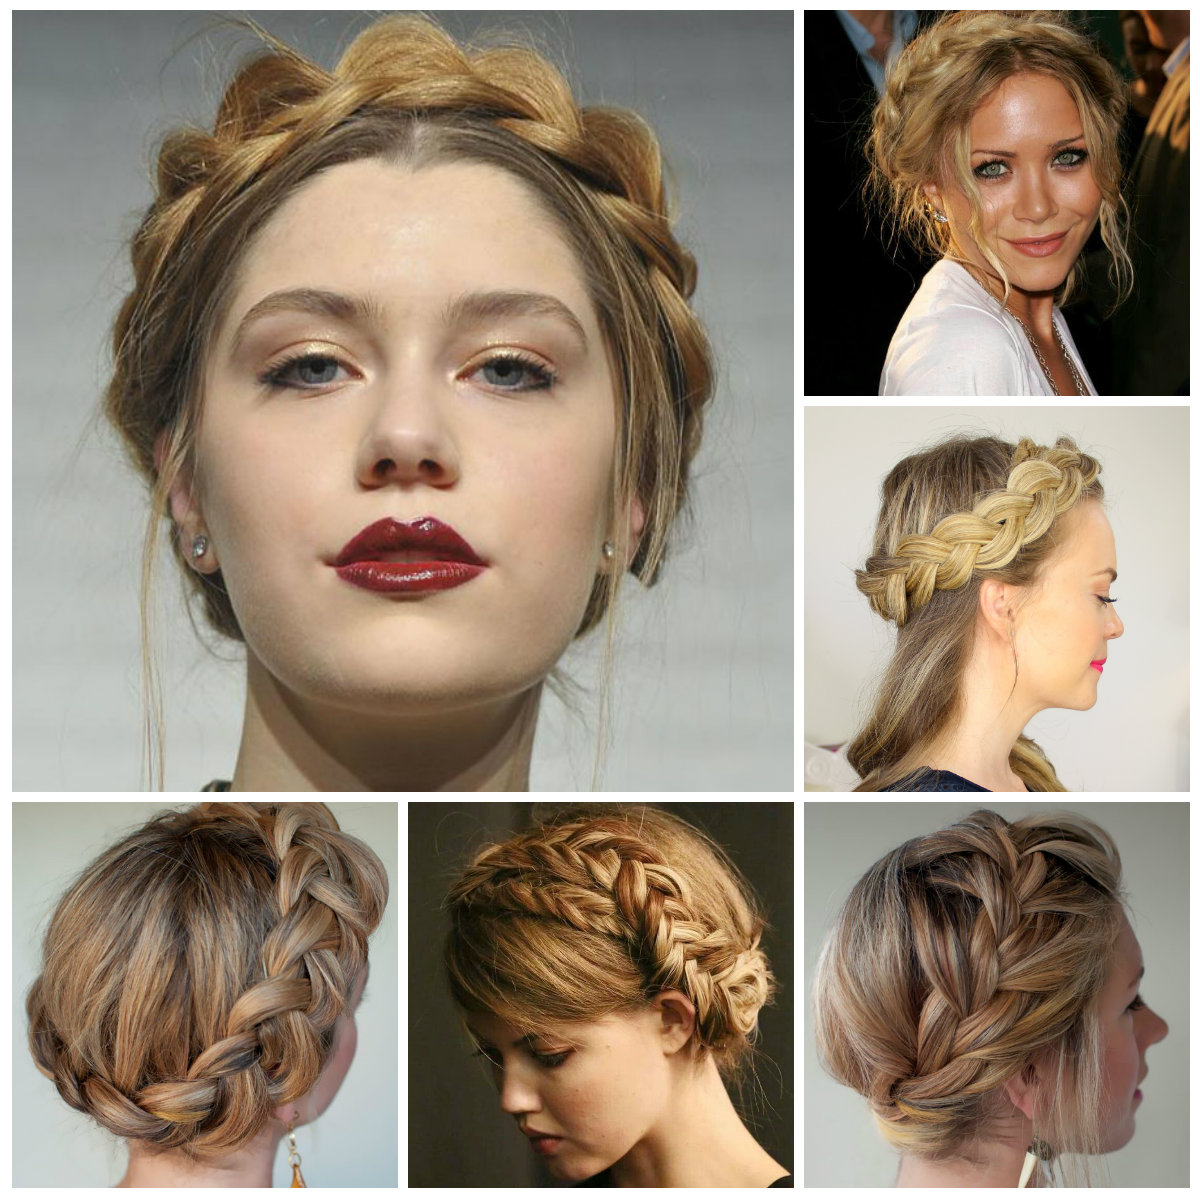 Recent Fishtail Crown Braided Hairstyles Throughout 2016 Popular Crown Braid Hairstyle Ideas (View 17 of 20)